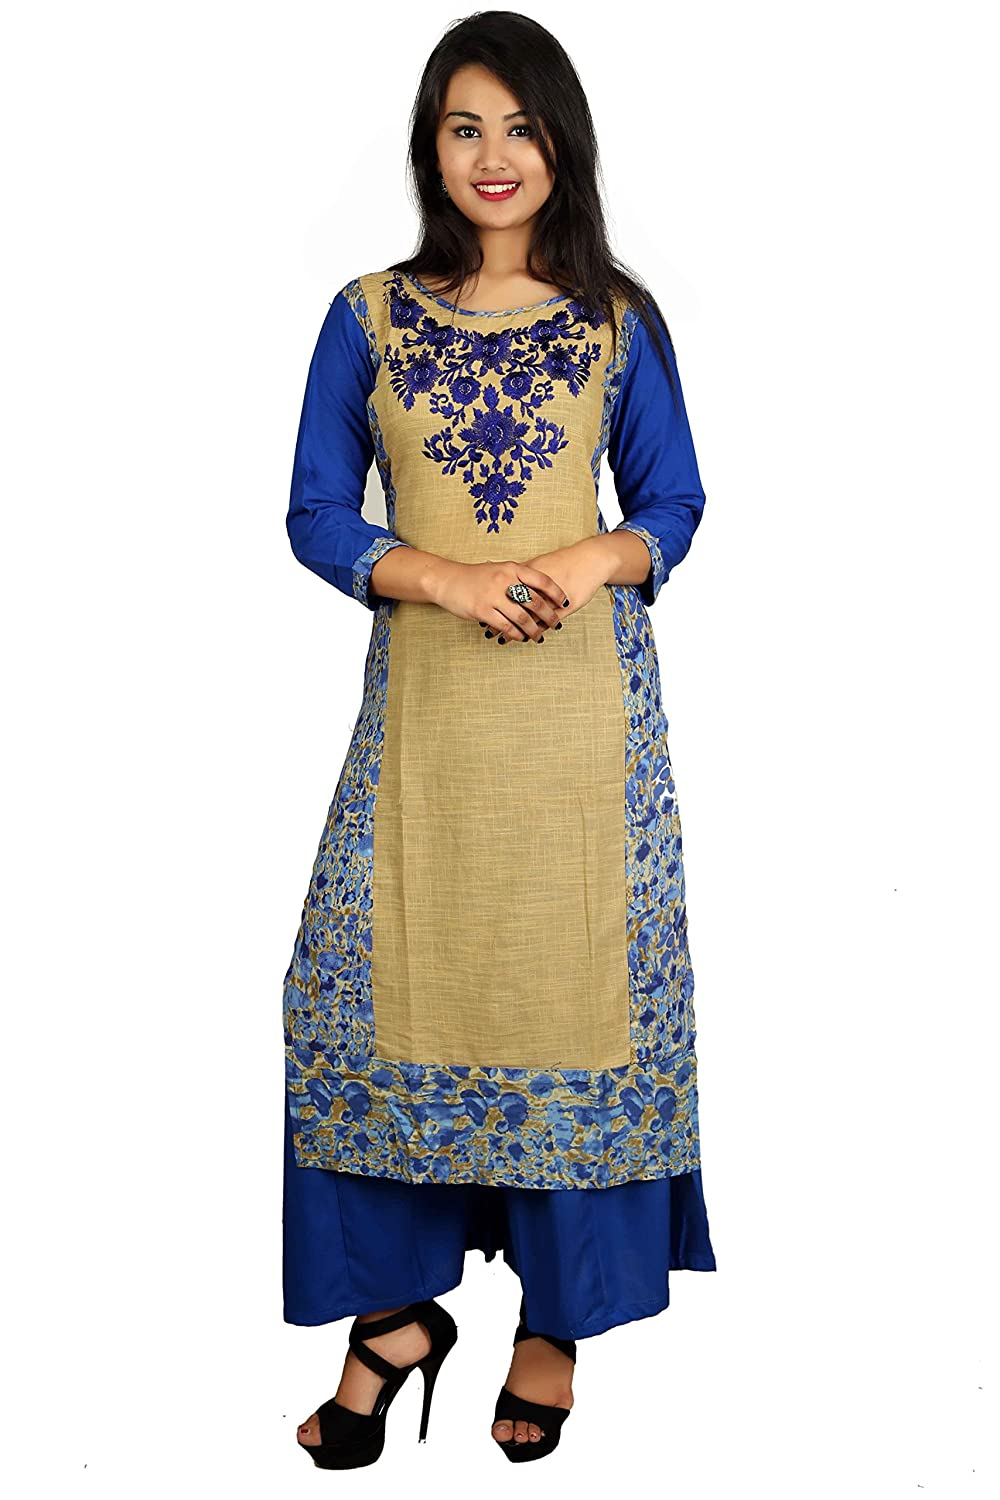 Blue Embroidered 3/4 Sleeve Cotton Women's Kurta and Palazzo Set Indian Handicrfats Export D08-Blue-Blue-XXL